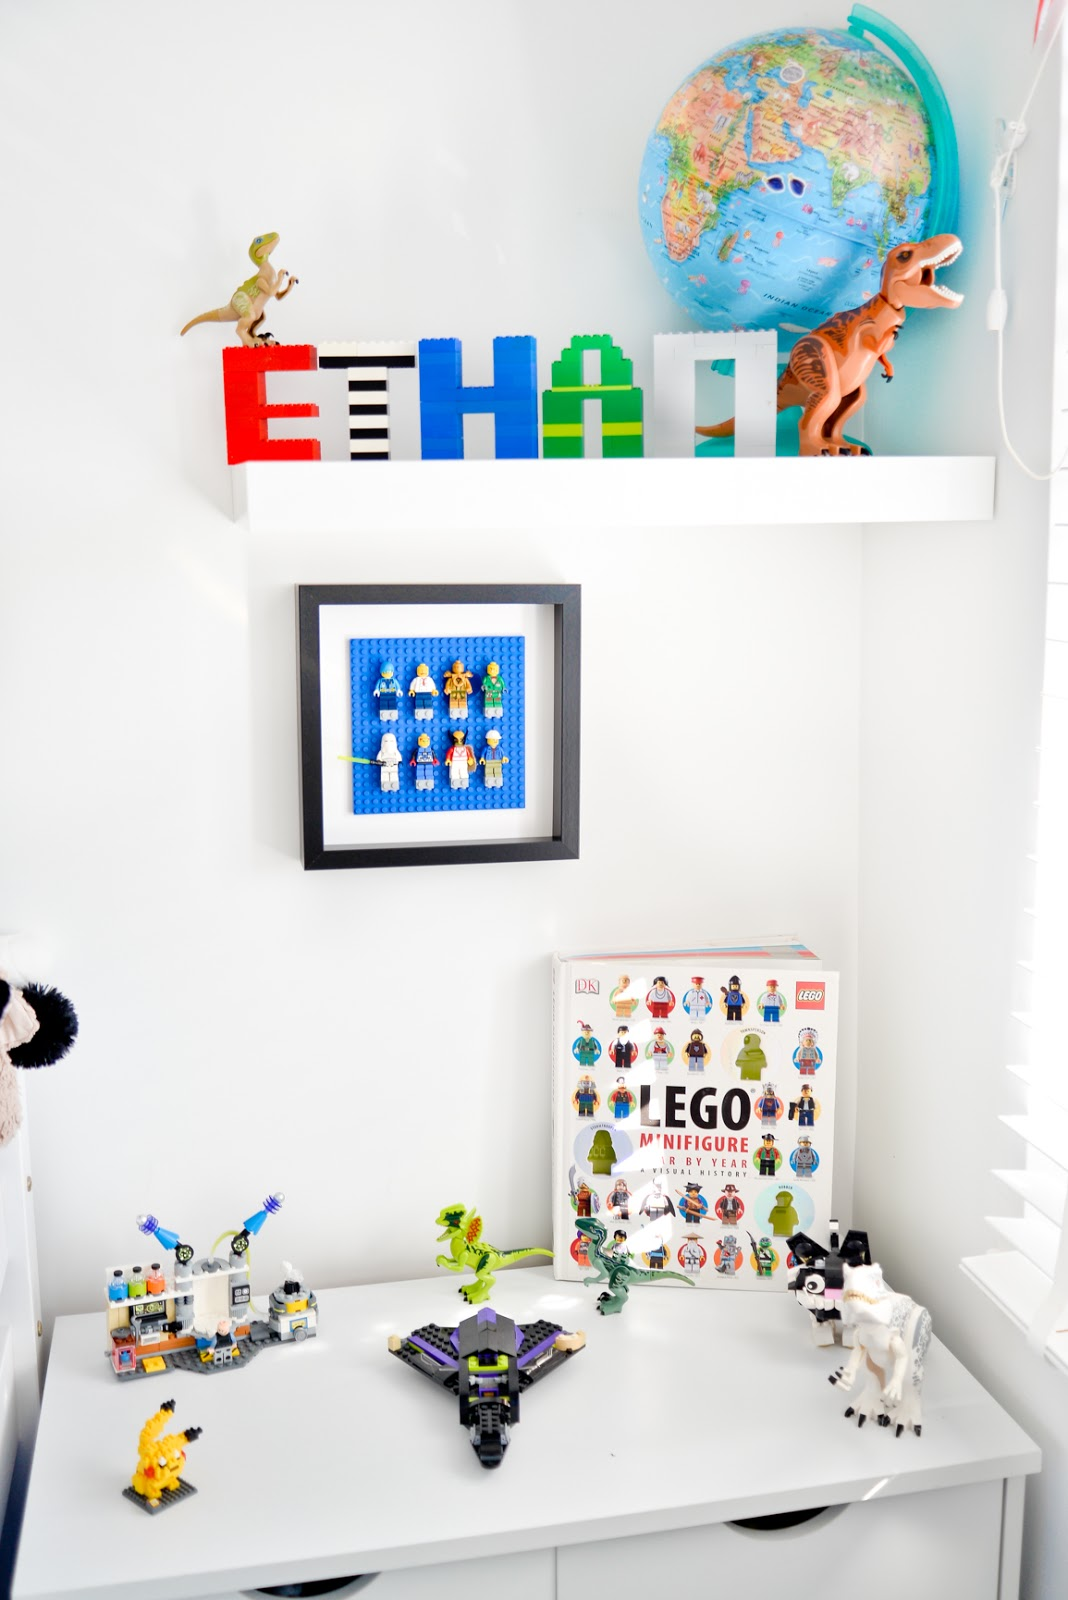 lego ideas, lego decor, lego diy, lego storage, lego name, lego letters, lego minifigure display, lego display ideas,